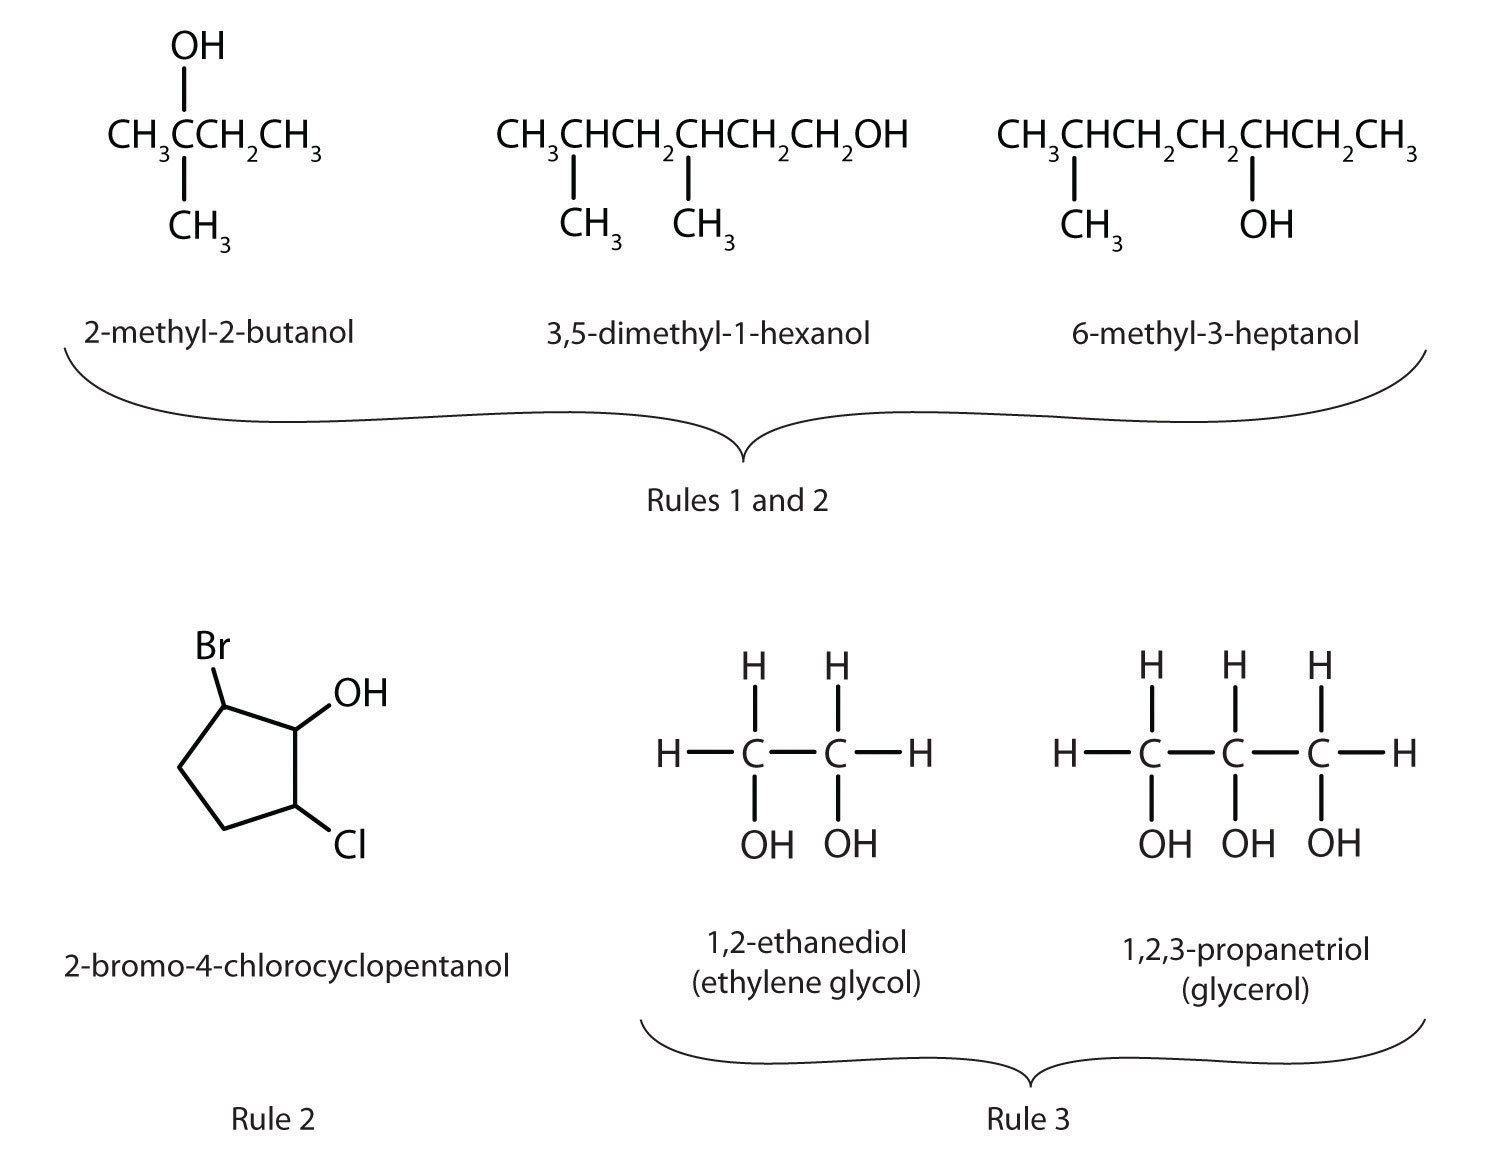 The names of these alcohols indicate the use of IUPAC naming rules.